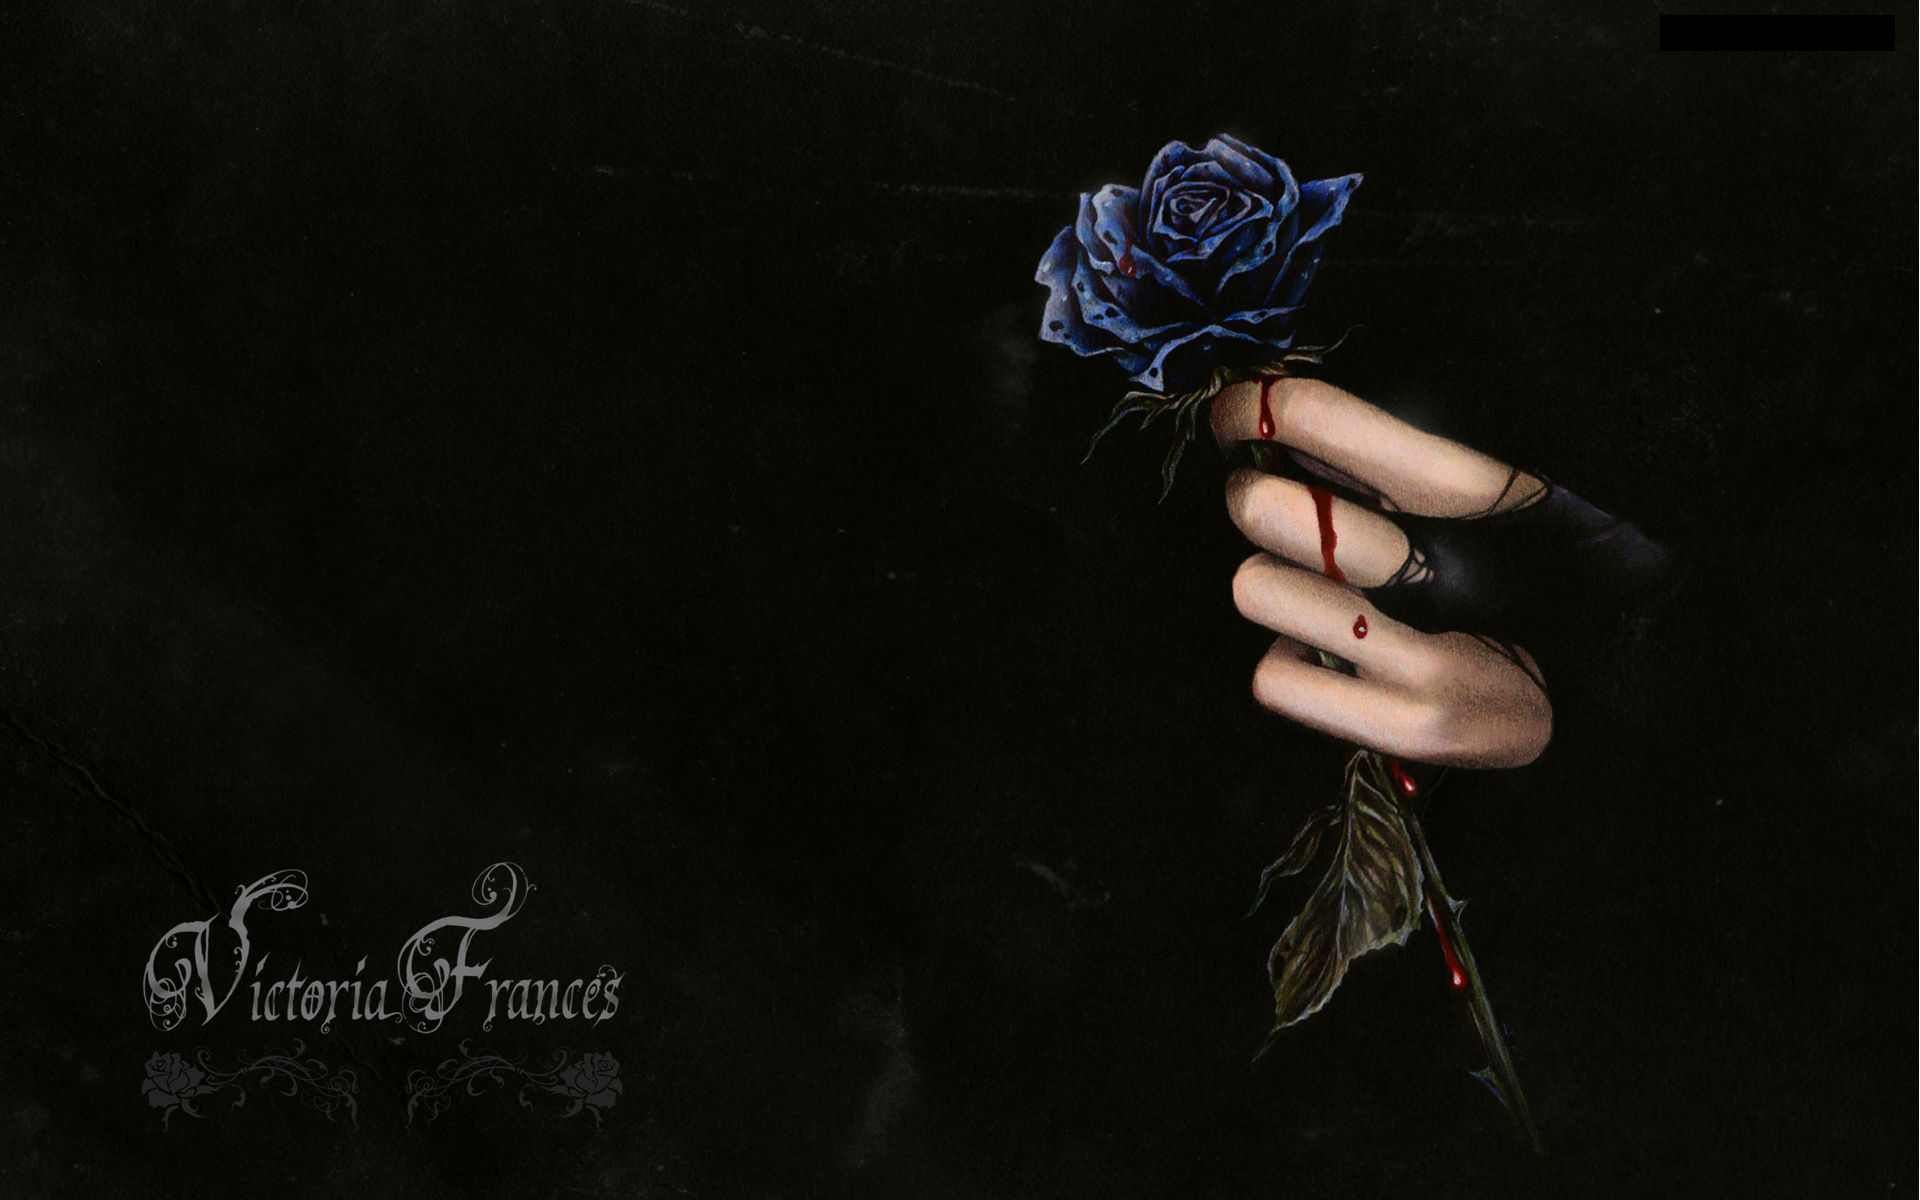 Dark horror fantasy gothic vampire blood flowers wallpaper 1920x1200 1920x1200